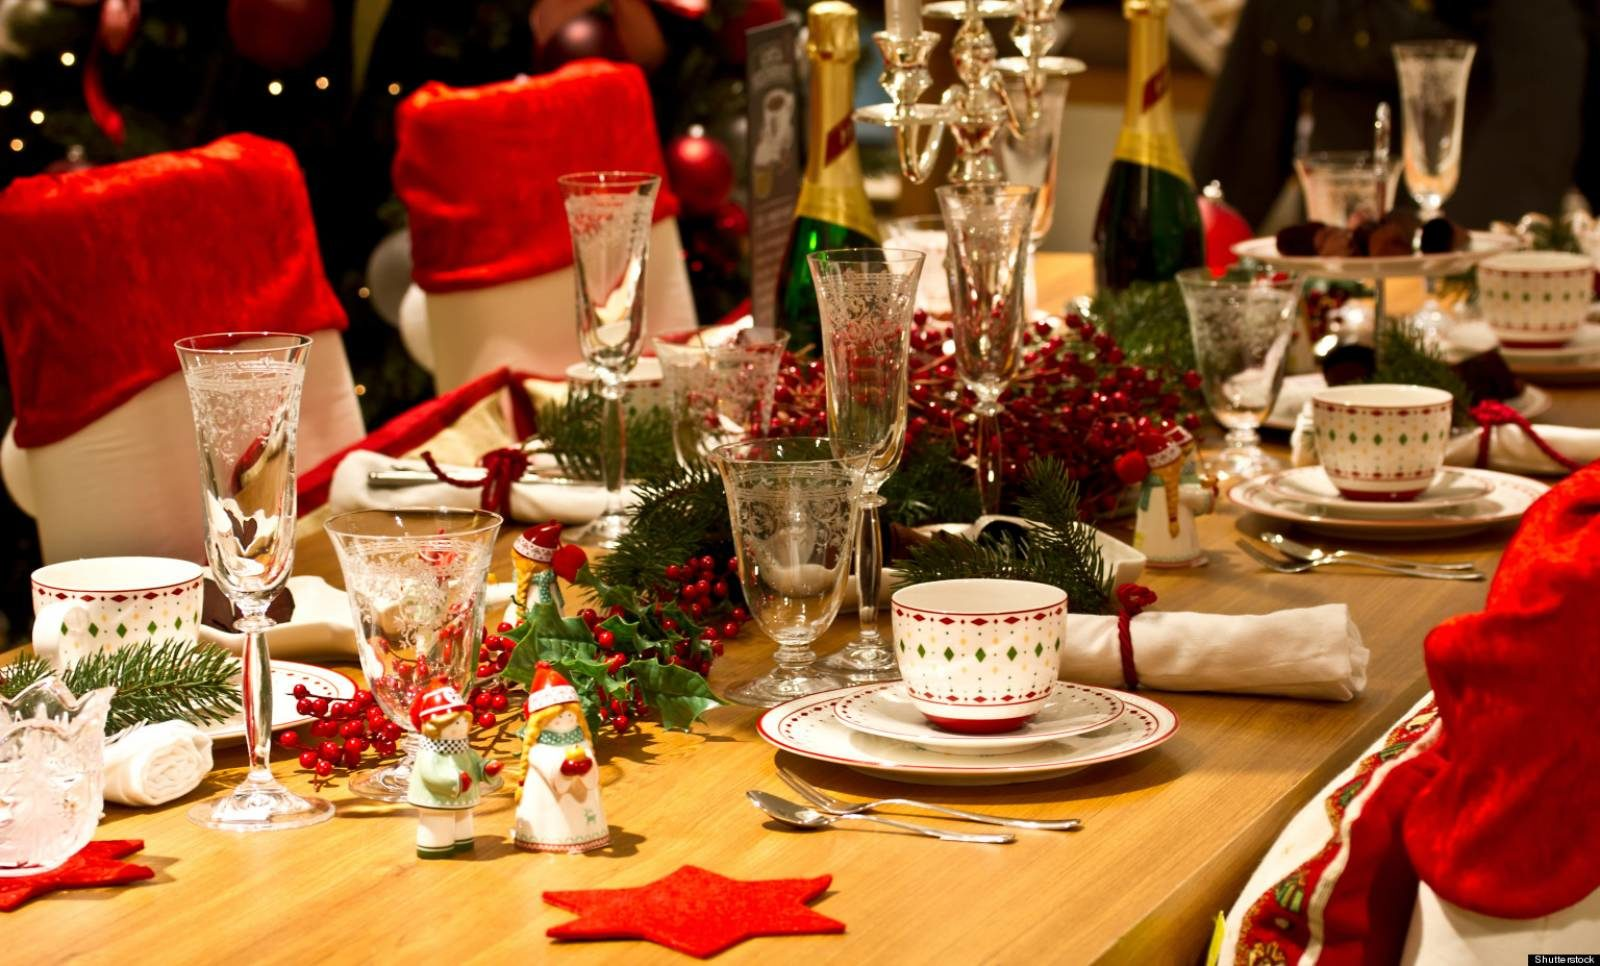 CHRISTMAS DINER